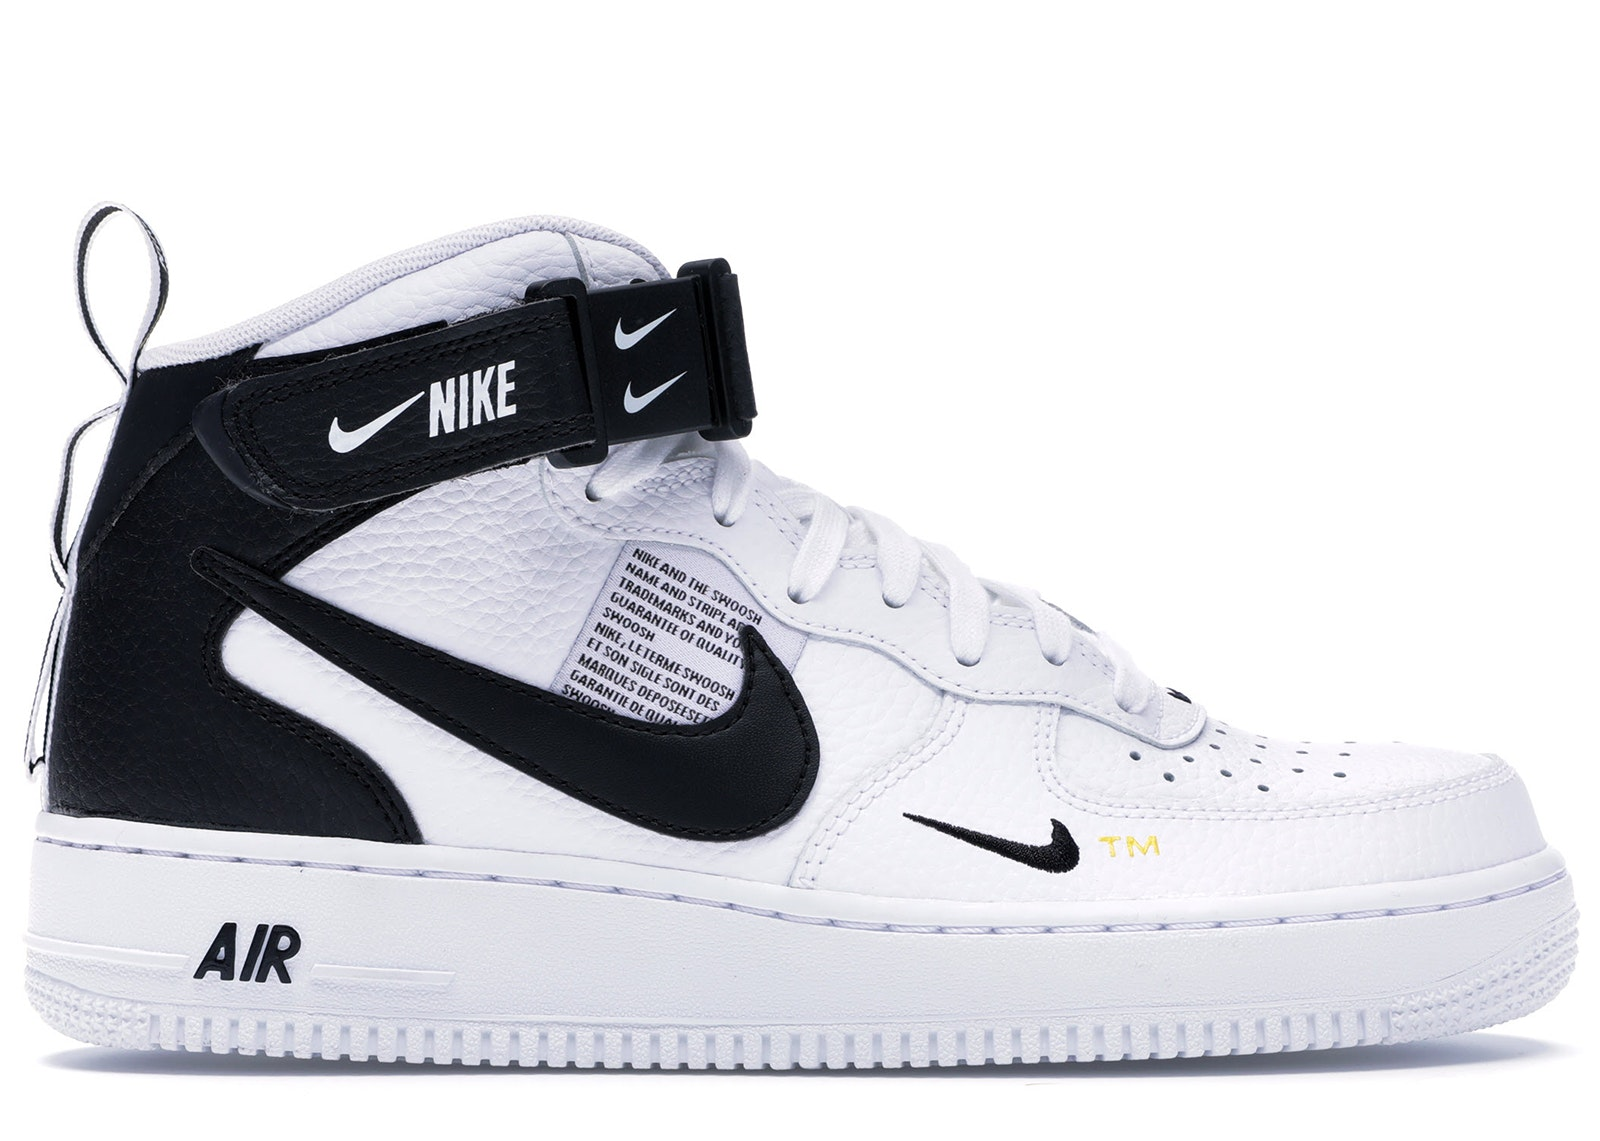 Air Force 1 Mid Utility White Black